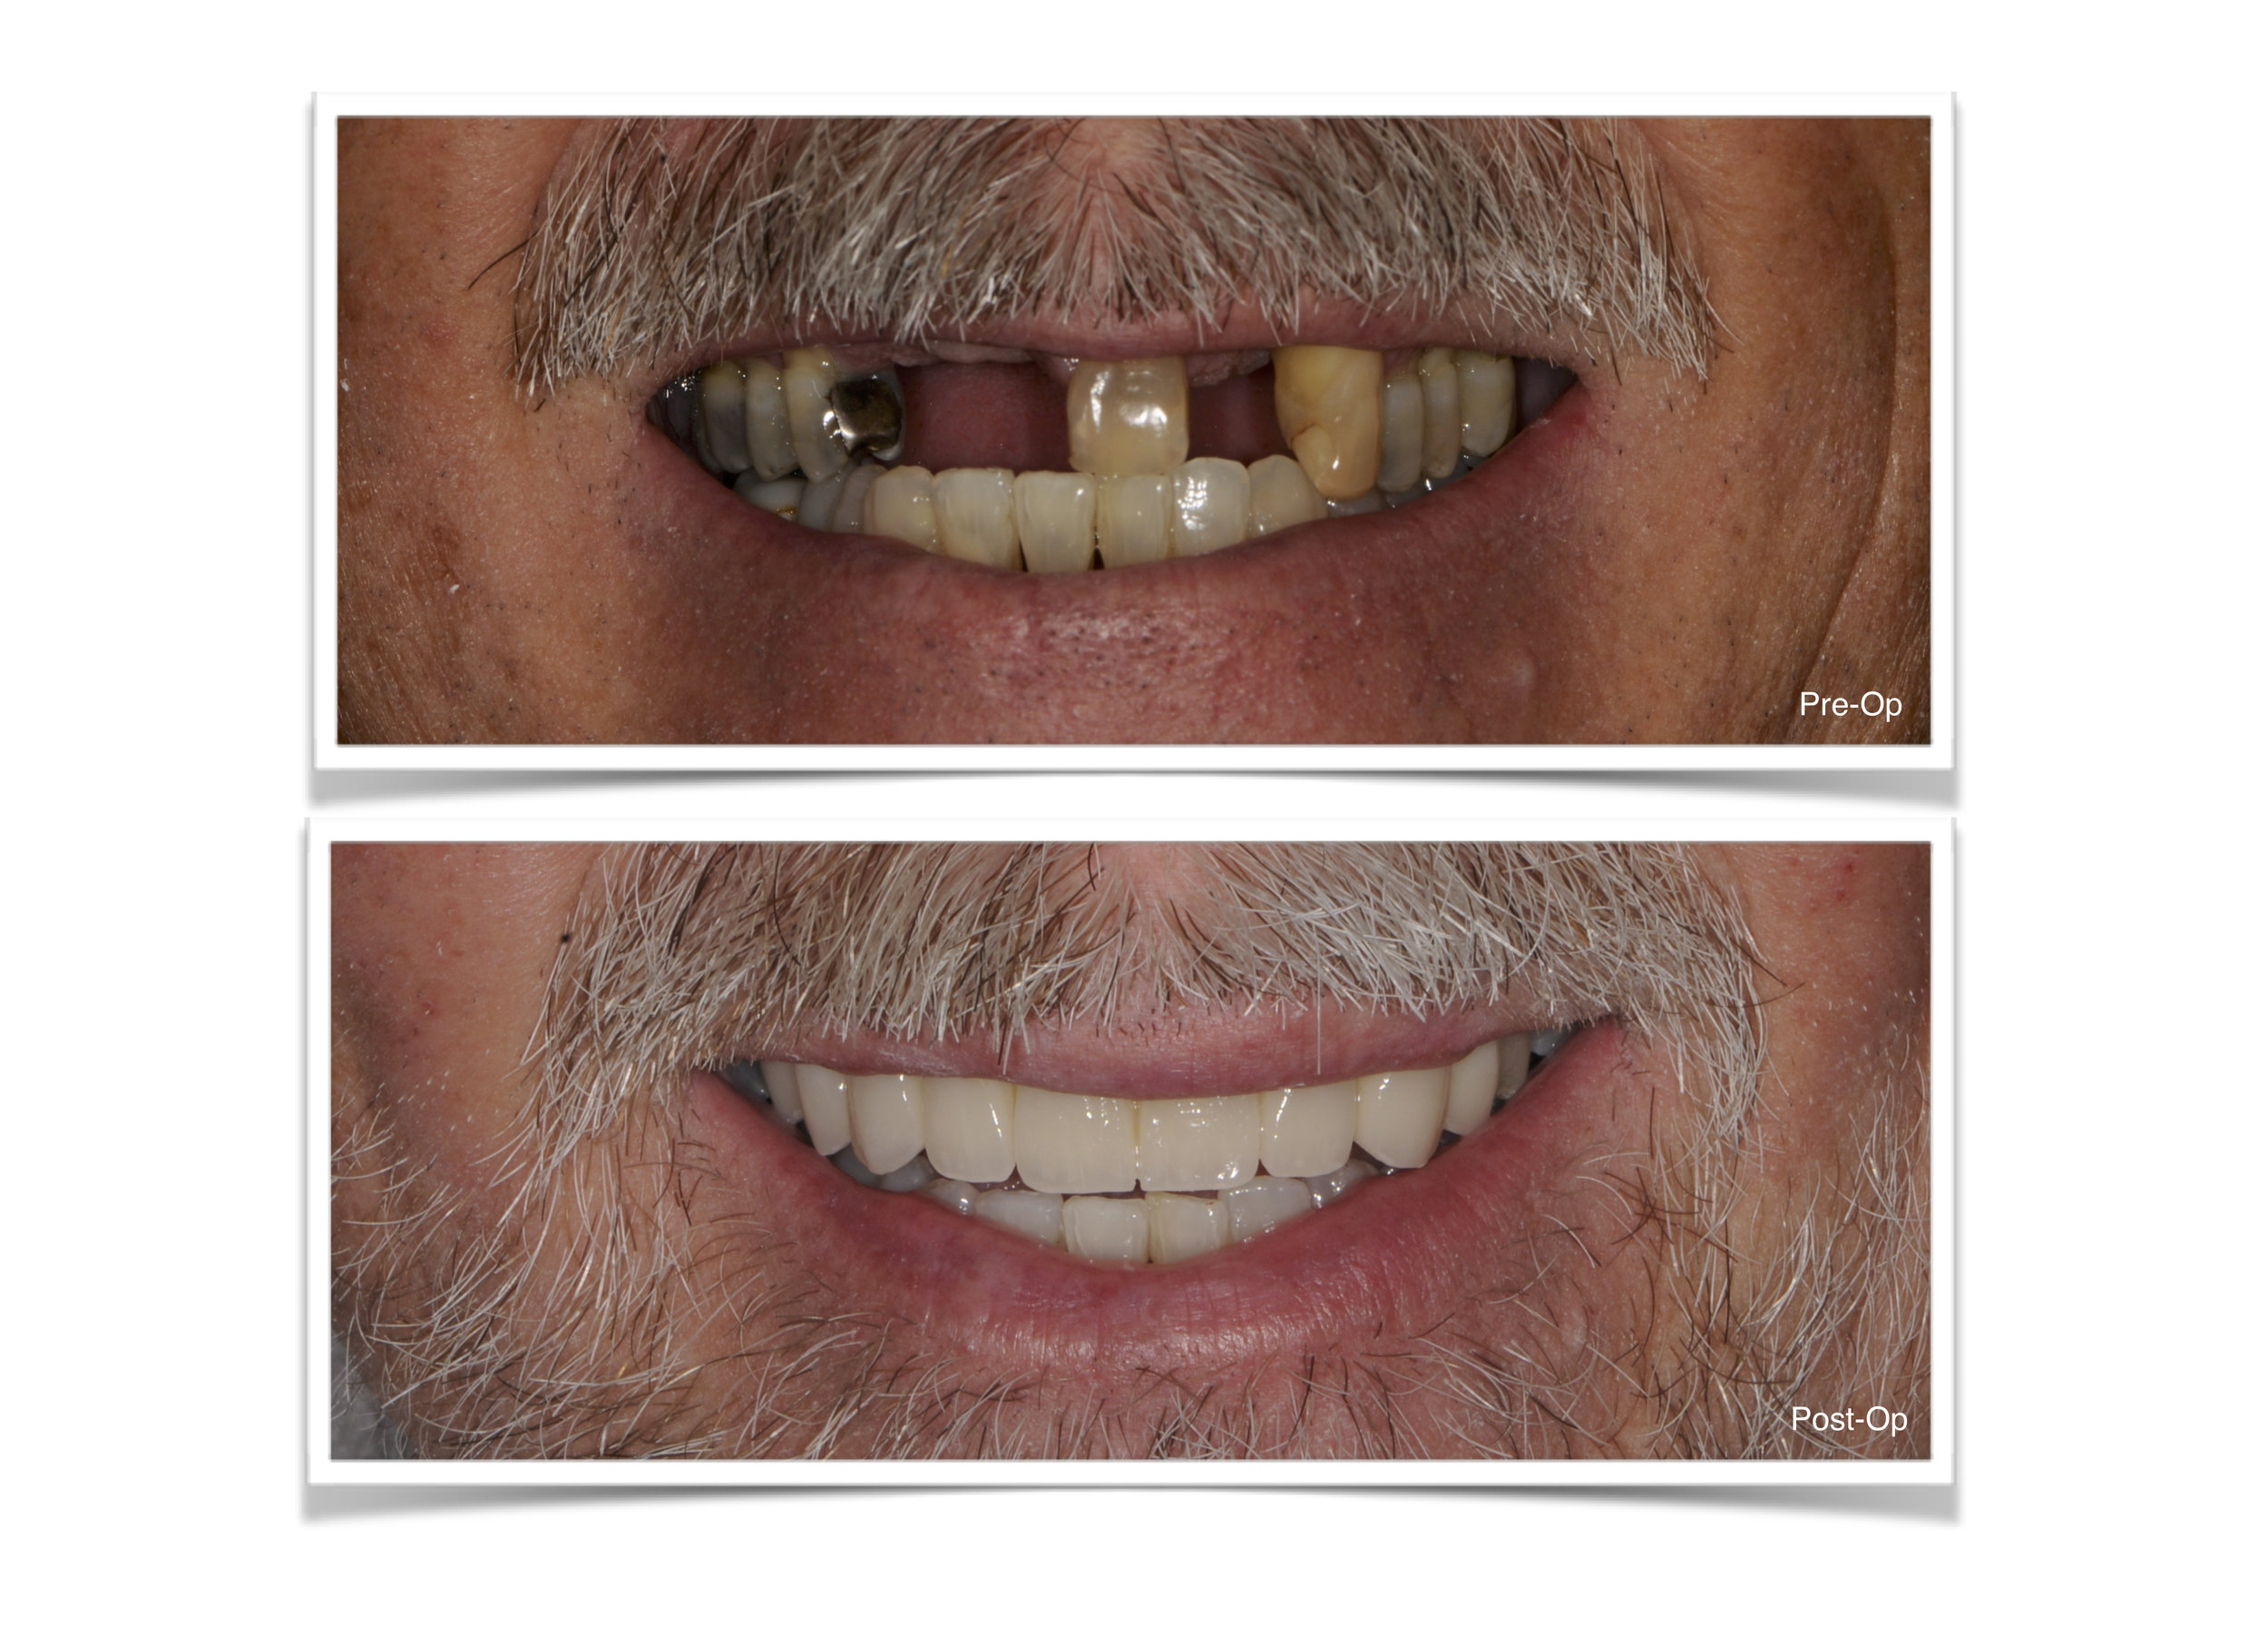 All Ceramic Bridge Jacksonville Dentist 32207